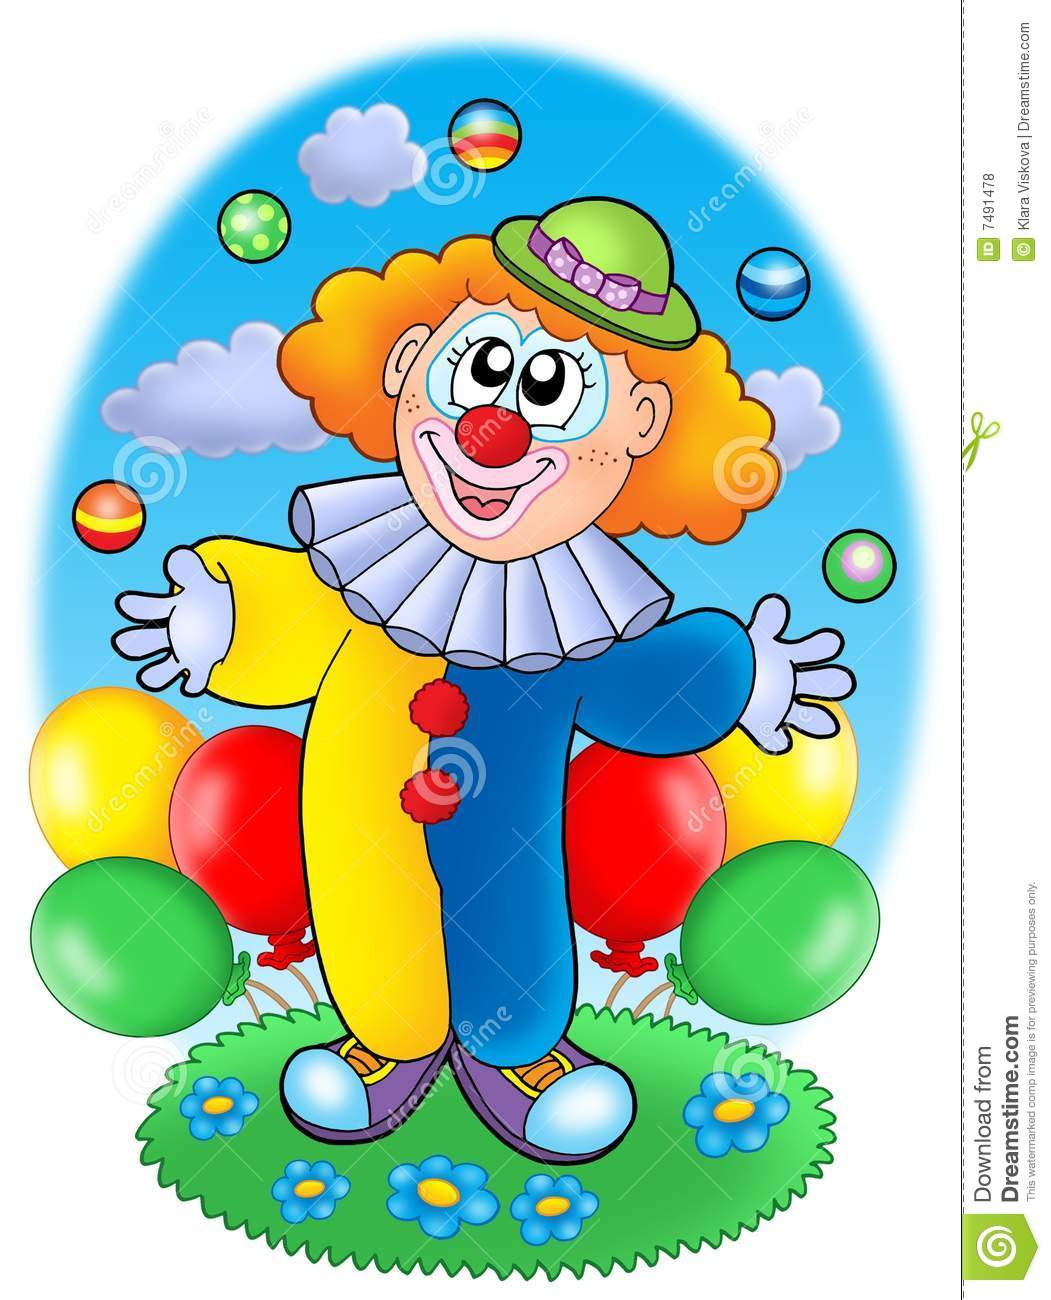 Juggling Cartoon Clown With Balloons Royalty Free Stock